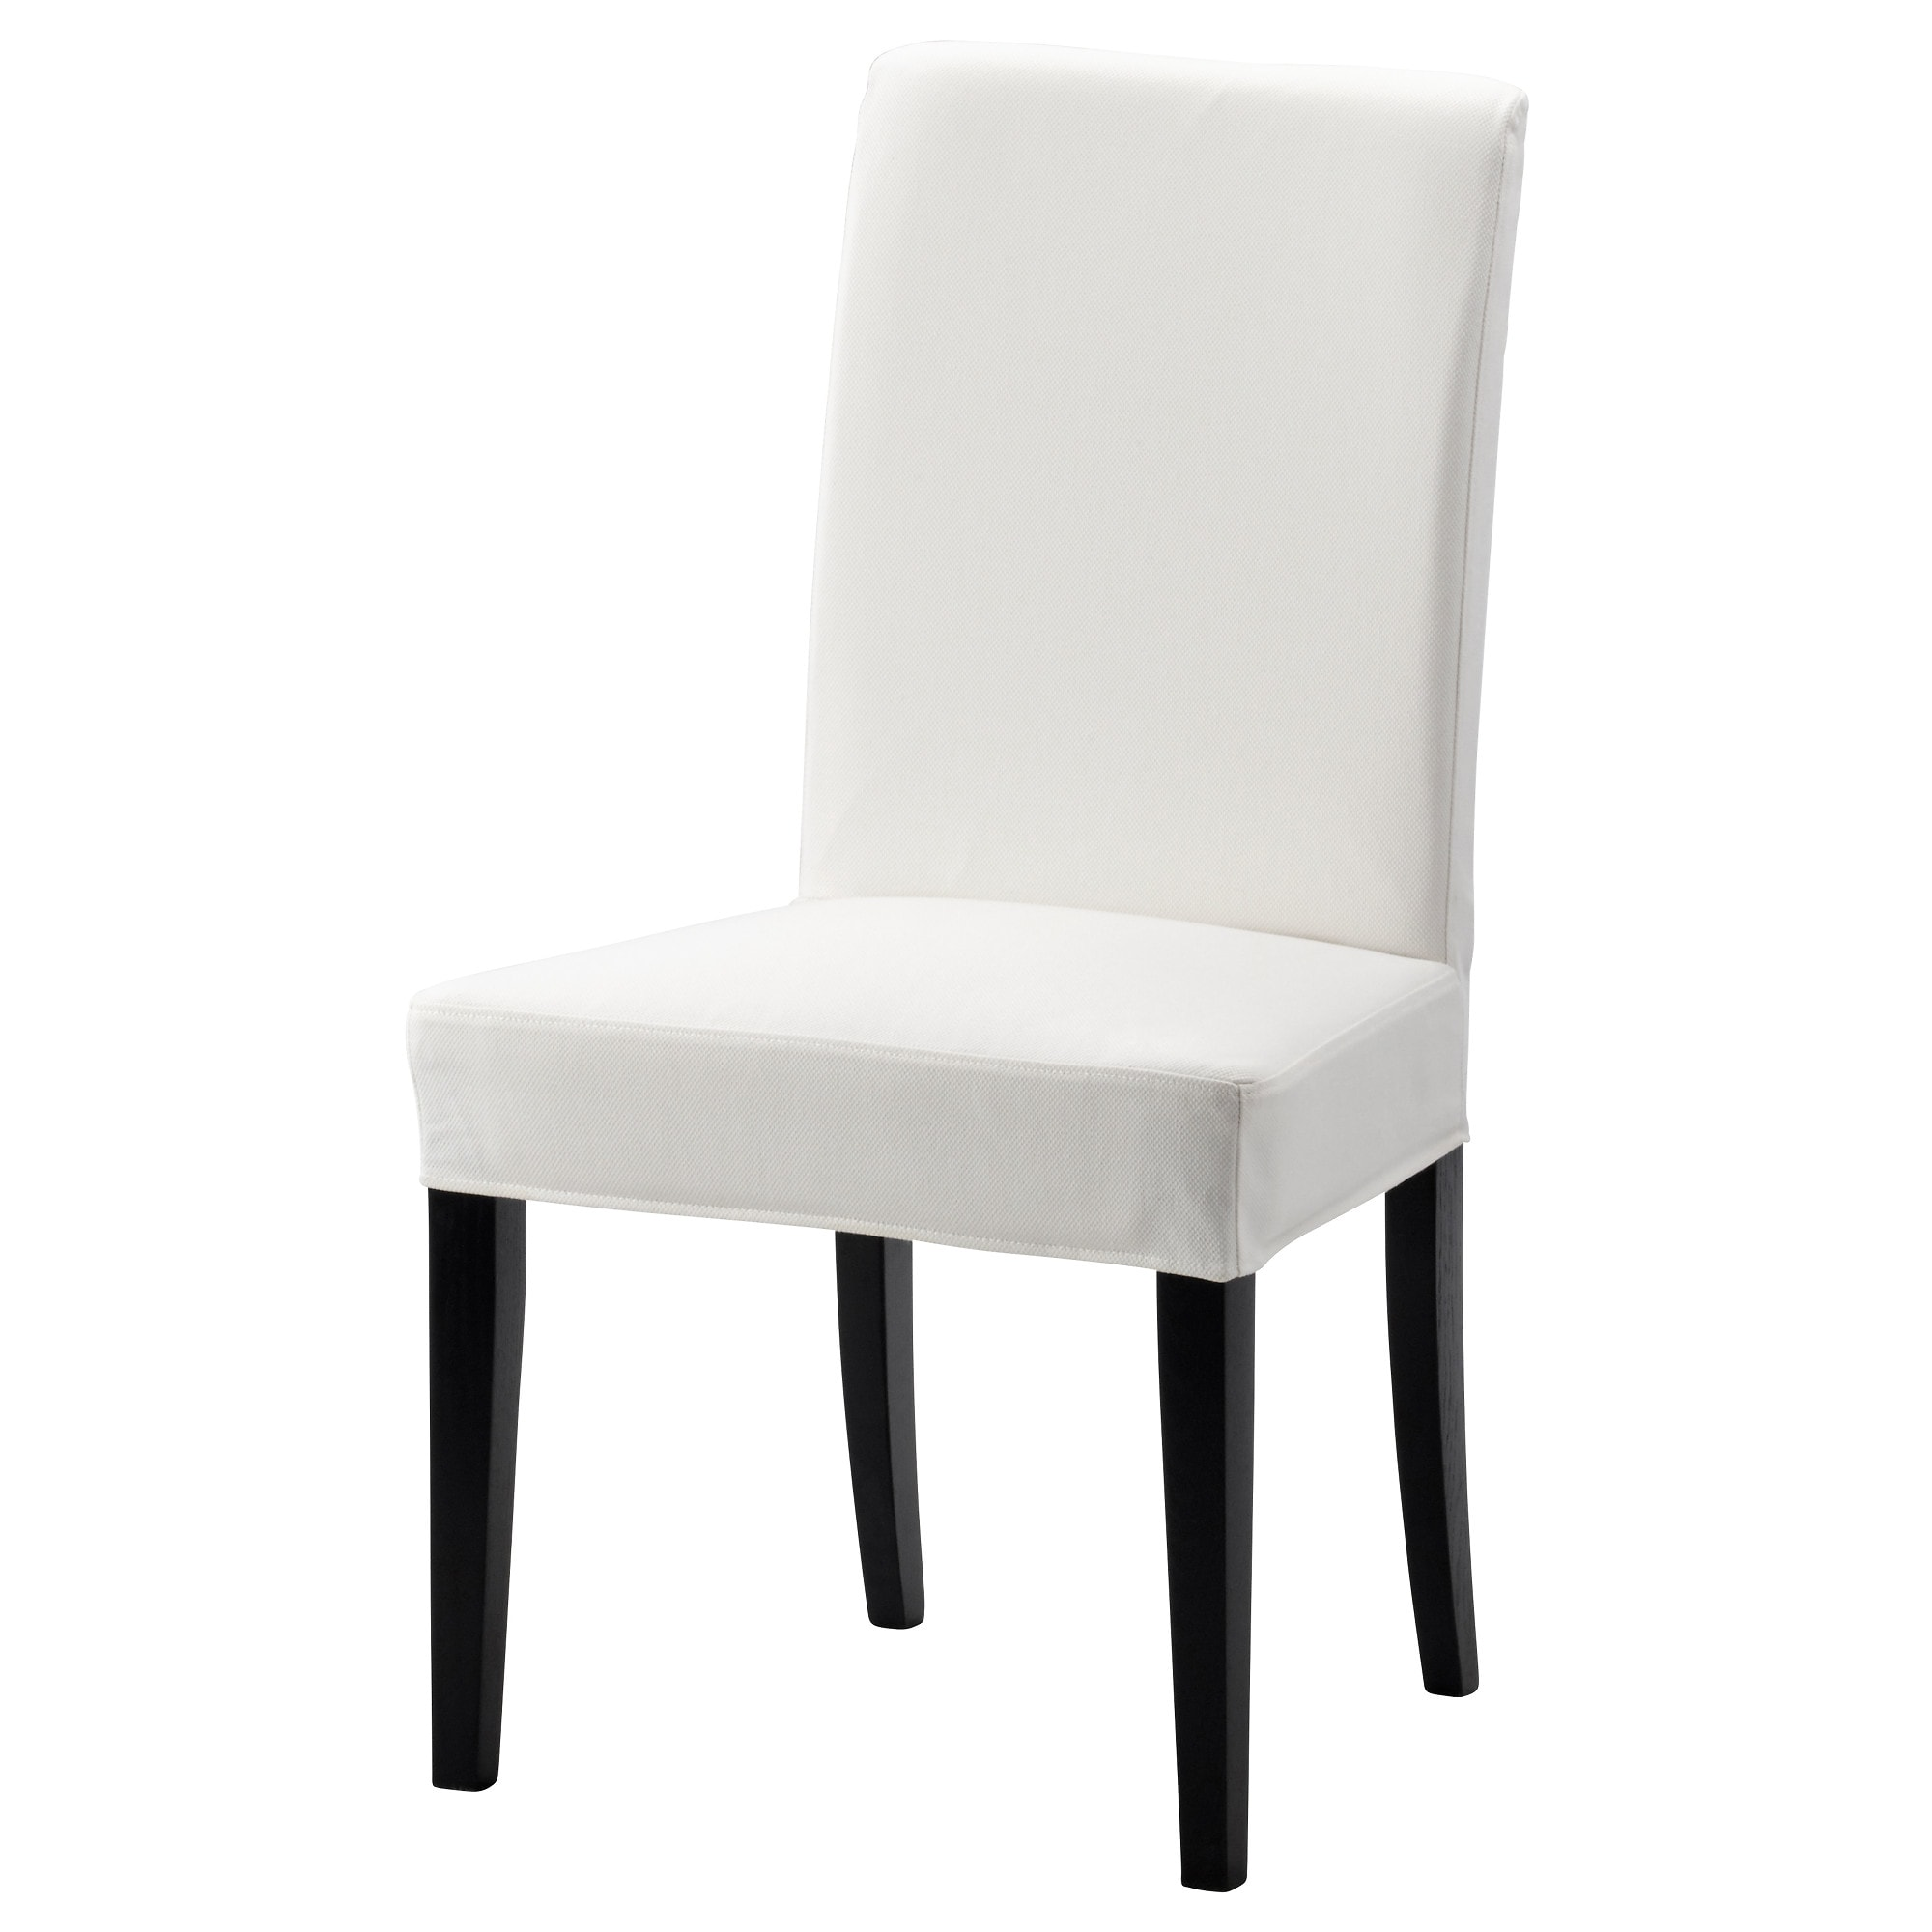 HENRIKSDAL Chair Brown Black Grsbo White Tested For 243 Lb Width